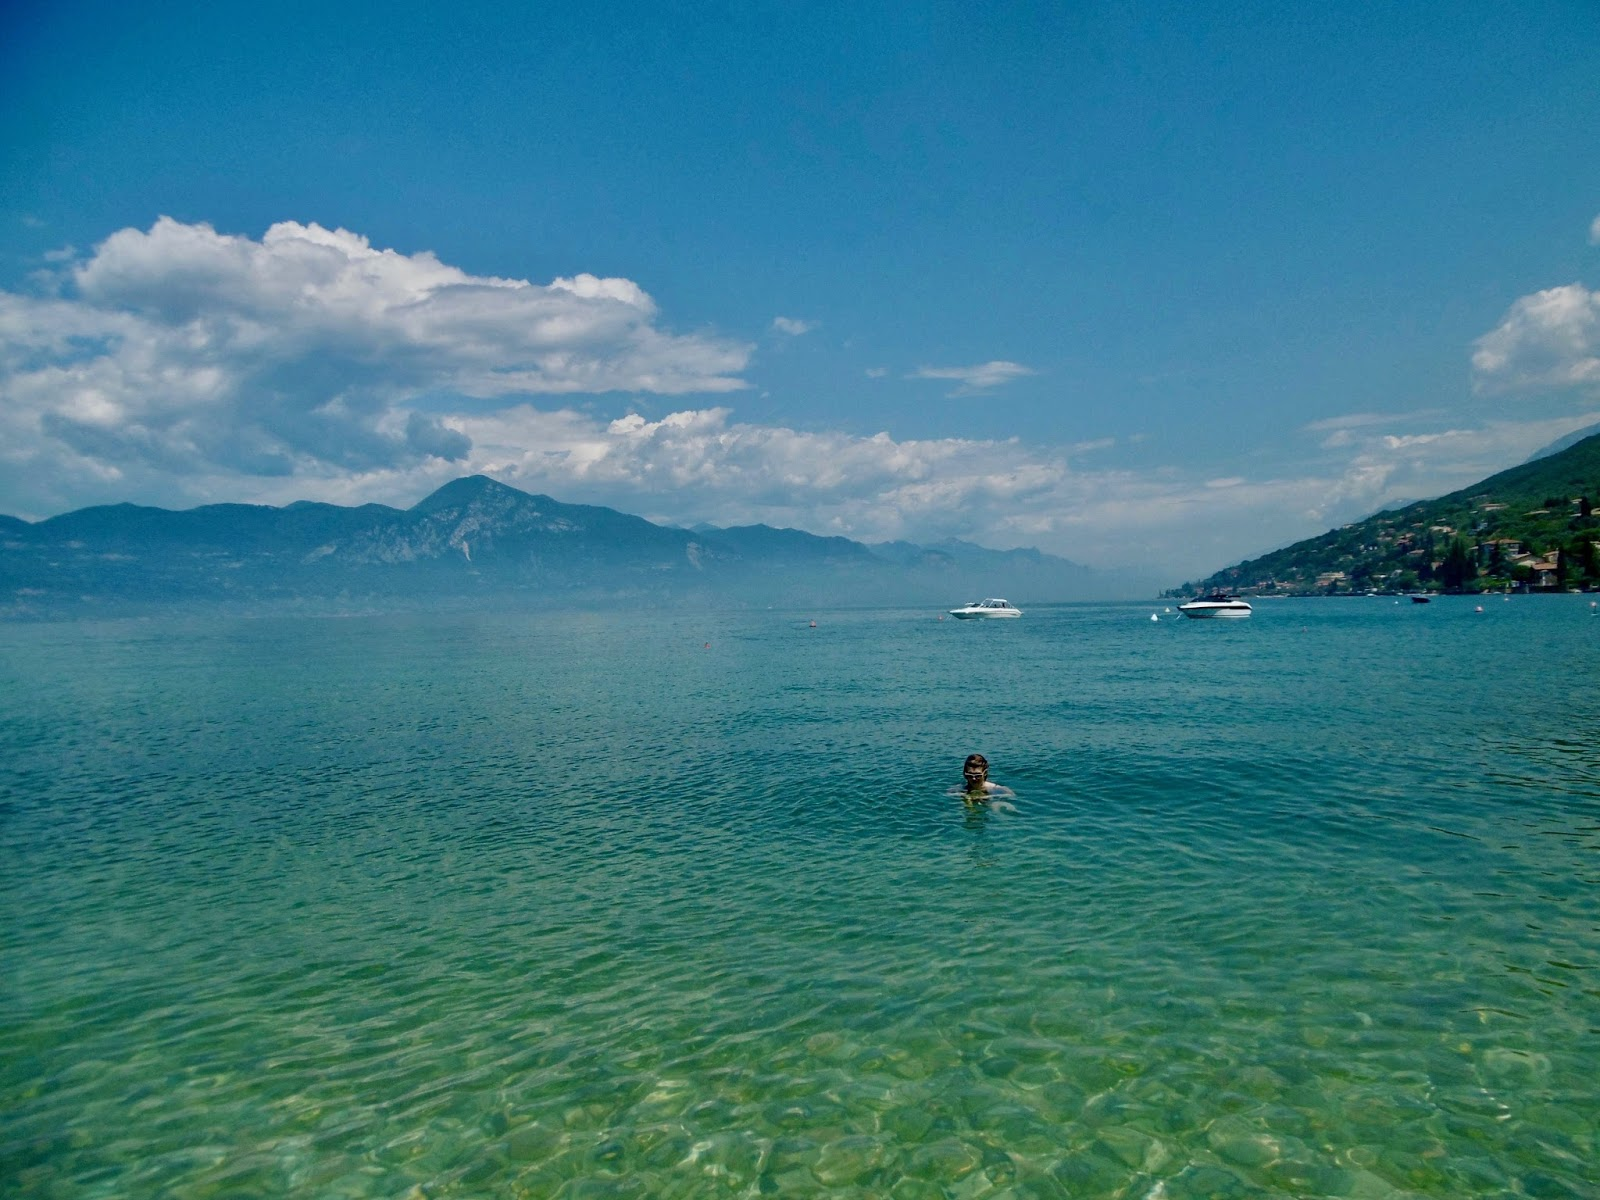 swimming in Lake garda, 21 day tour of Italy, where to visit and where to stay. Cal McTravels